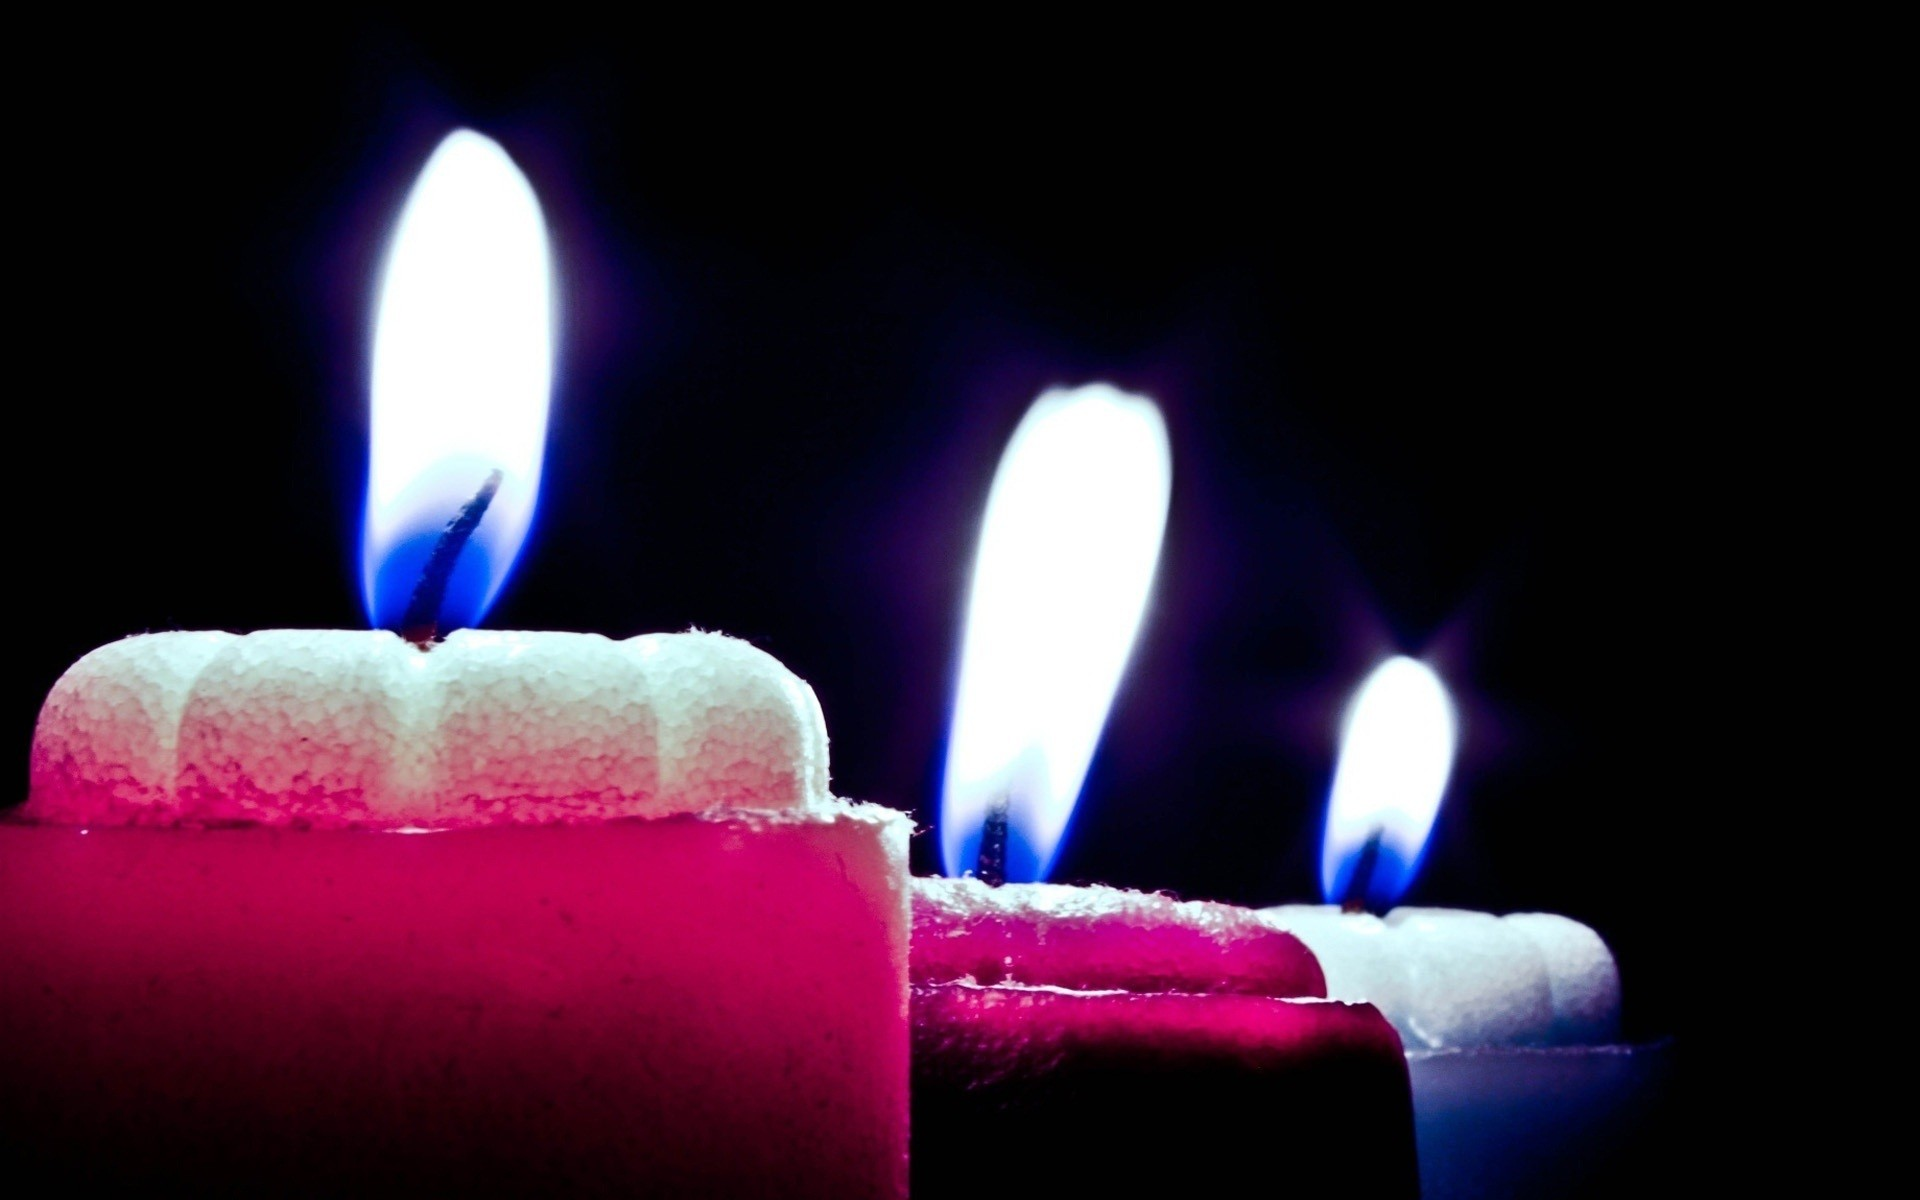 Pink candle light amazing greetings wallpaper